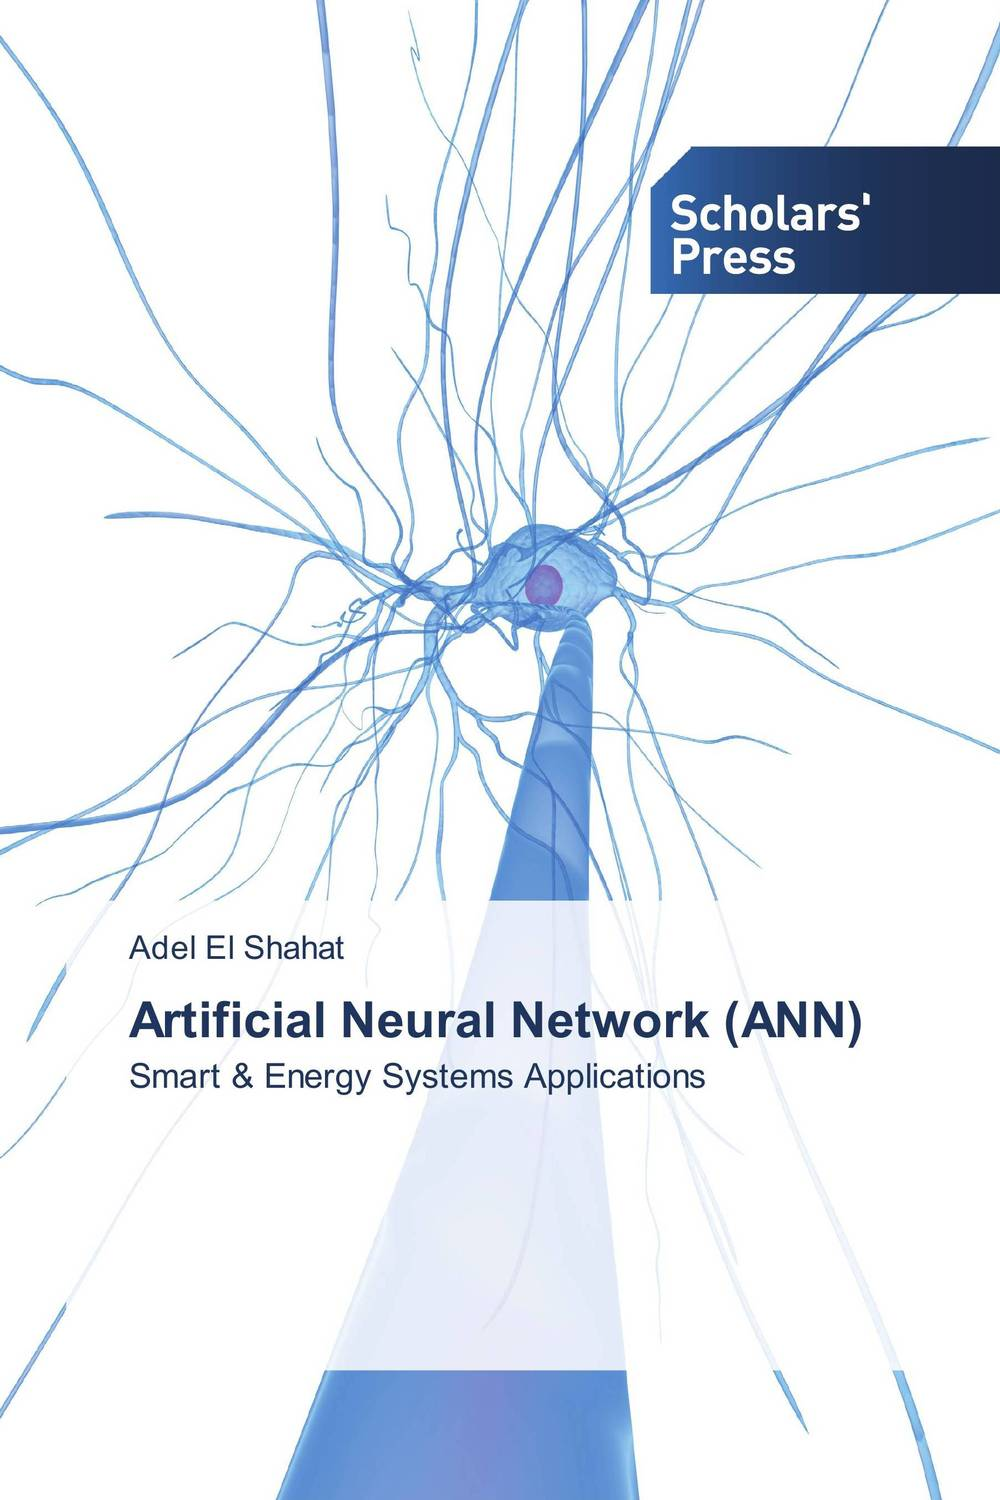 Artificial Neural Network (ANN) only plug unified controllers in smart grids by synchronous converter